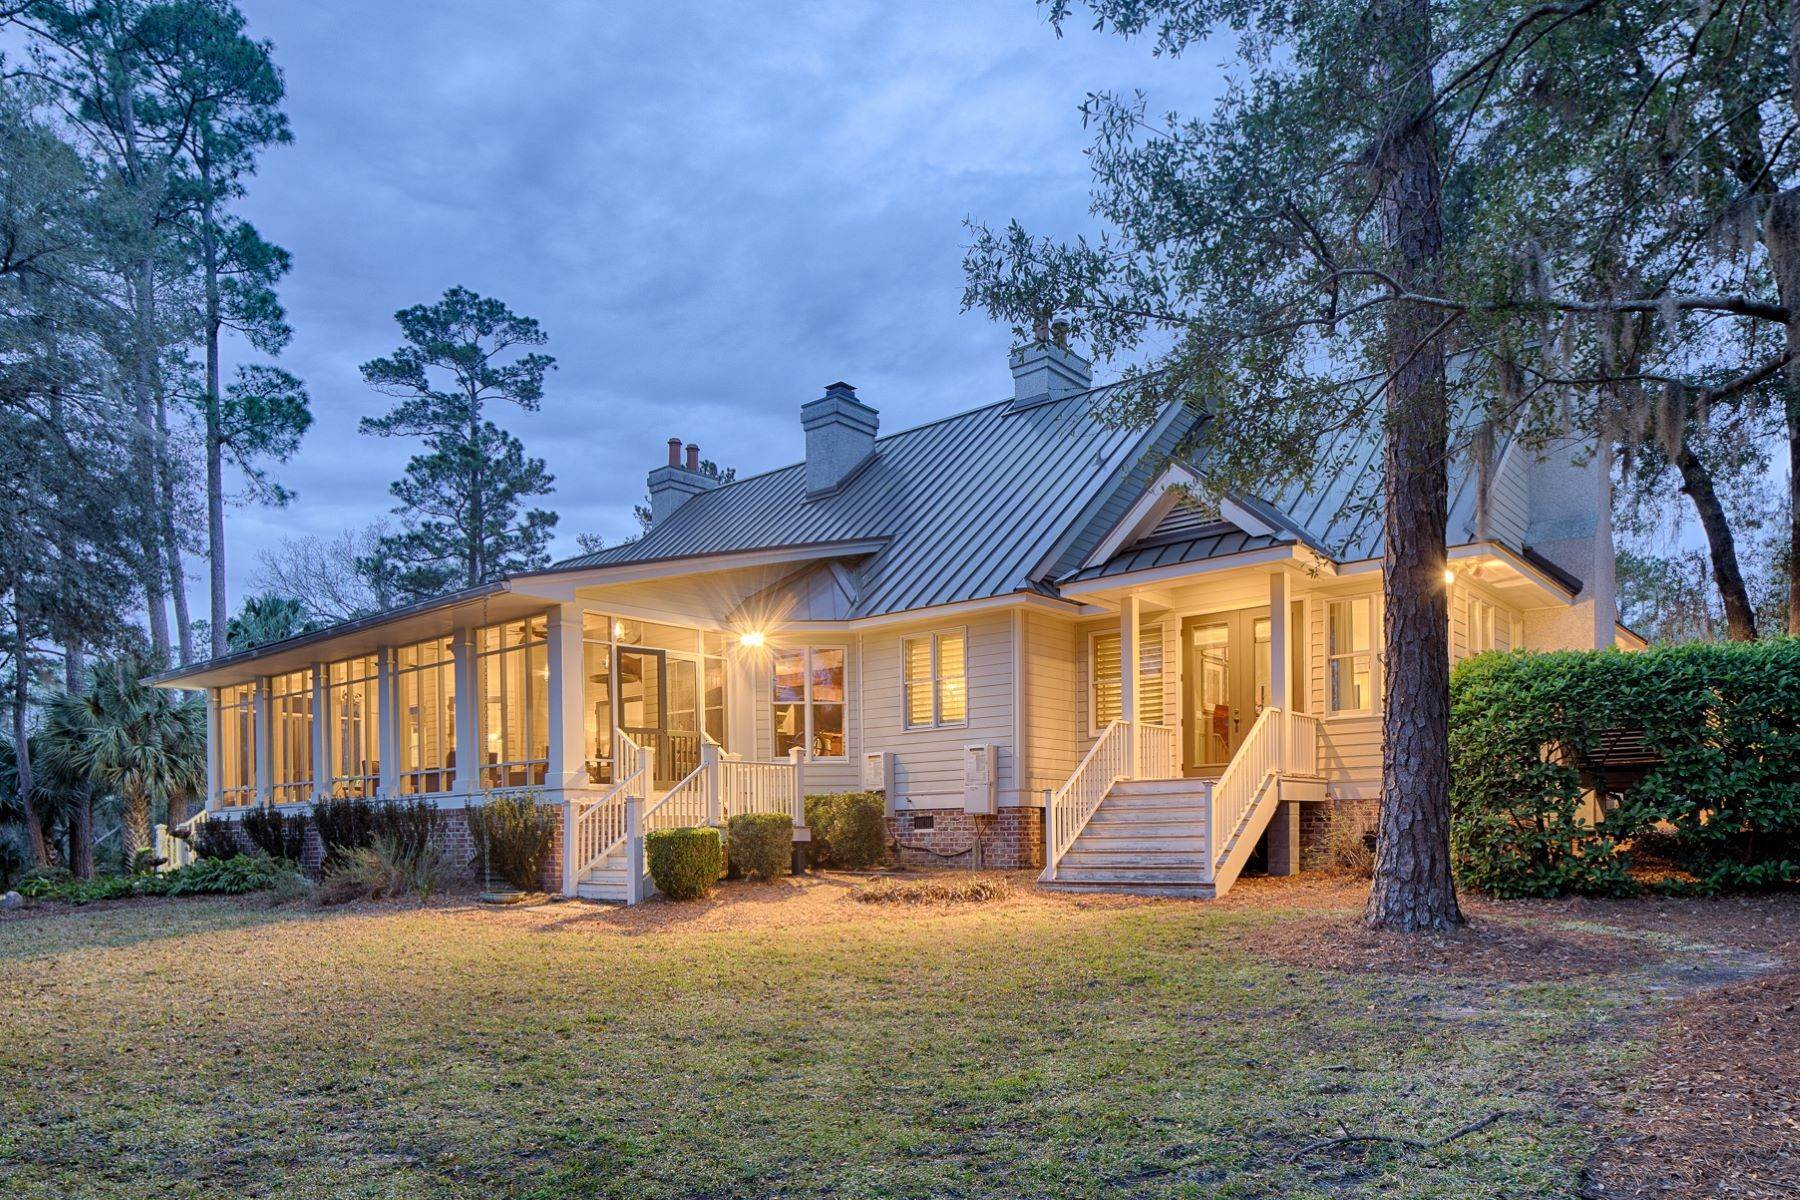 43. Single Family Homes for Sale at 7 Acres in Gascoigne Bluff 155 Gascoigne Bluff Road Bluffton, South Carolina 29910 United States